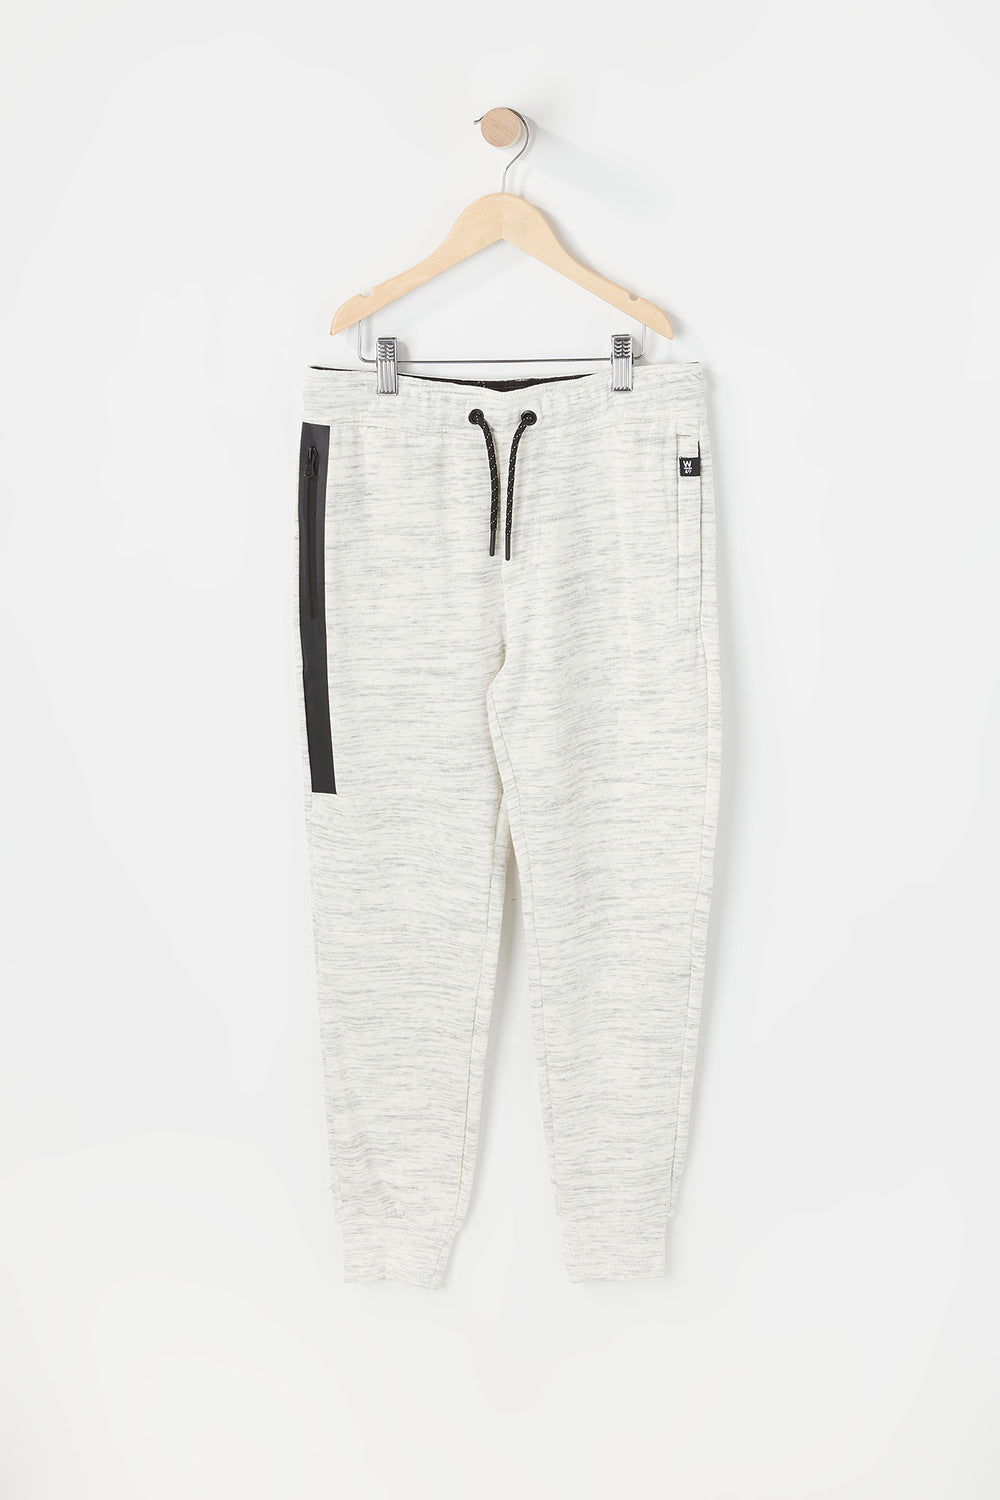 West49 Youth Spacedye Jogger Oatmeal